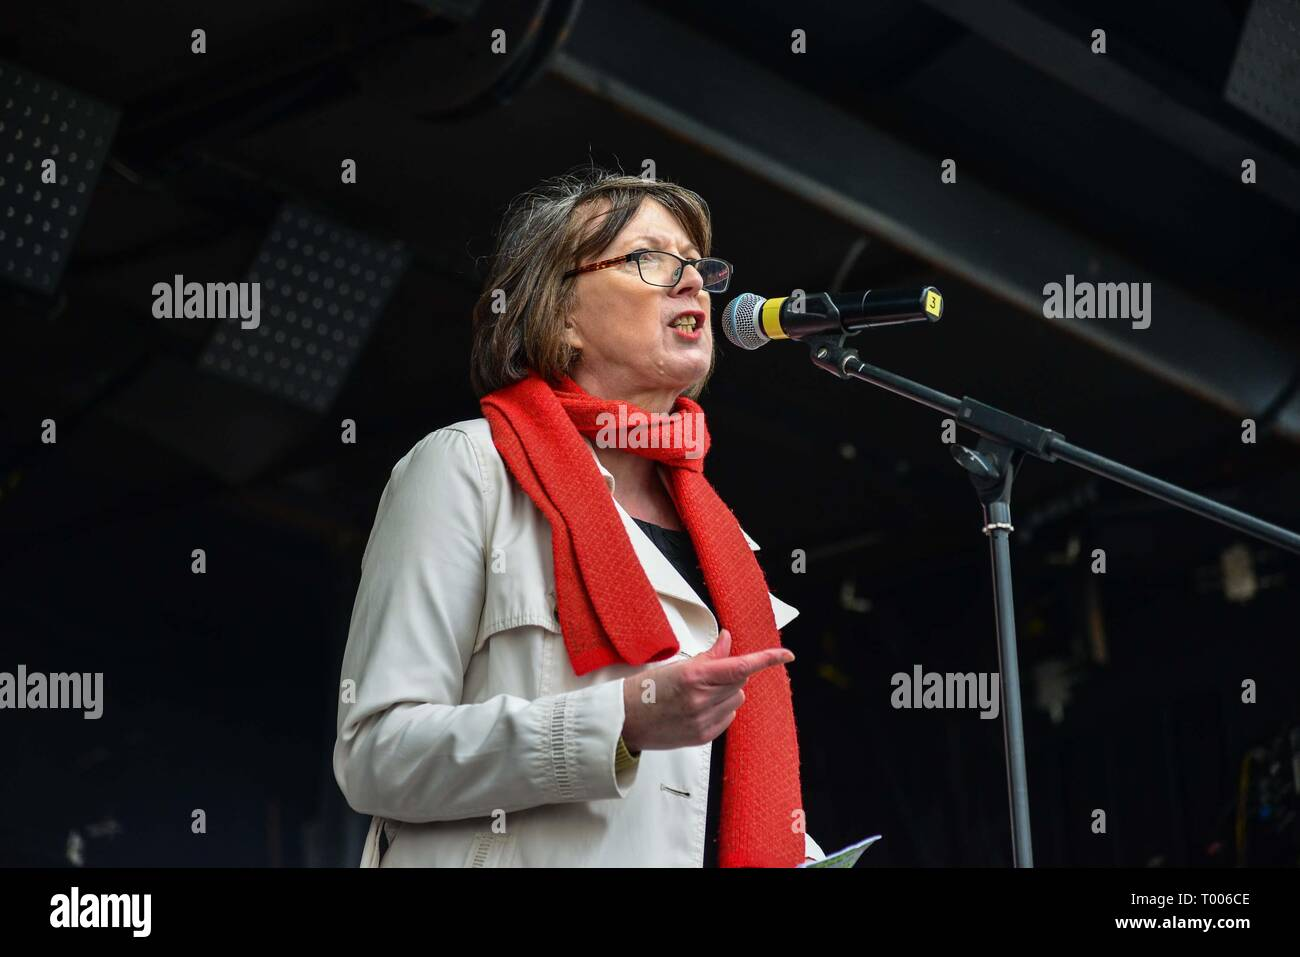 London, UK. 16th Mar, 2019. Frances  O'Grady , General Secretary of the British Trades Union Congress on stage at a rally in Whitehall for the United Nations Anti Racism Day. Credit: Claire Doherty/Alamy Live News - Stock Image